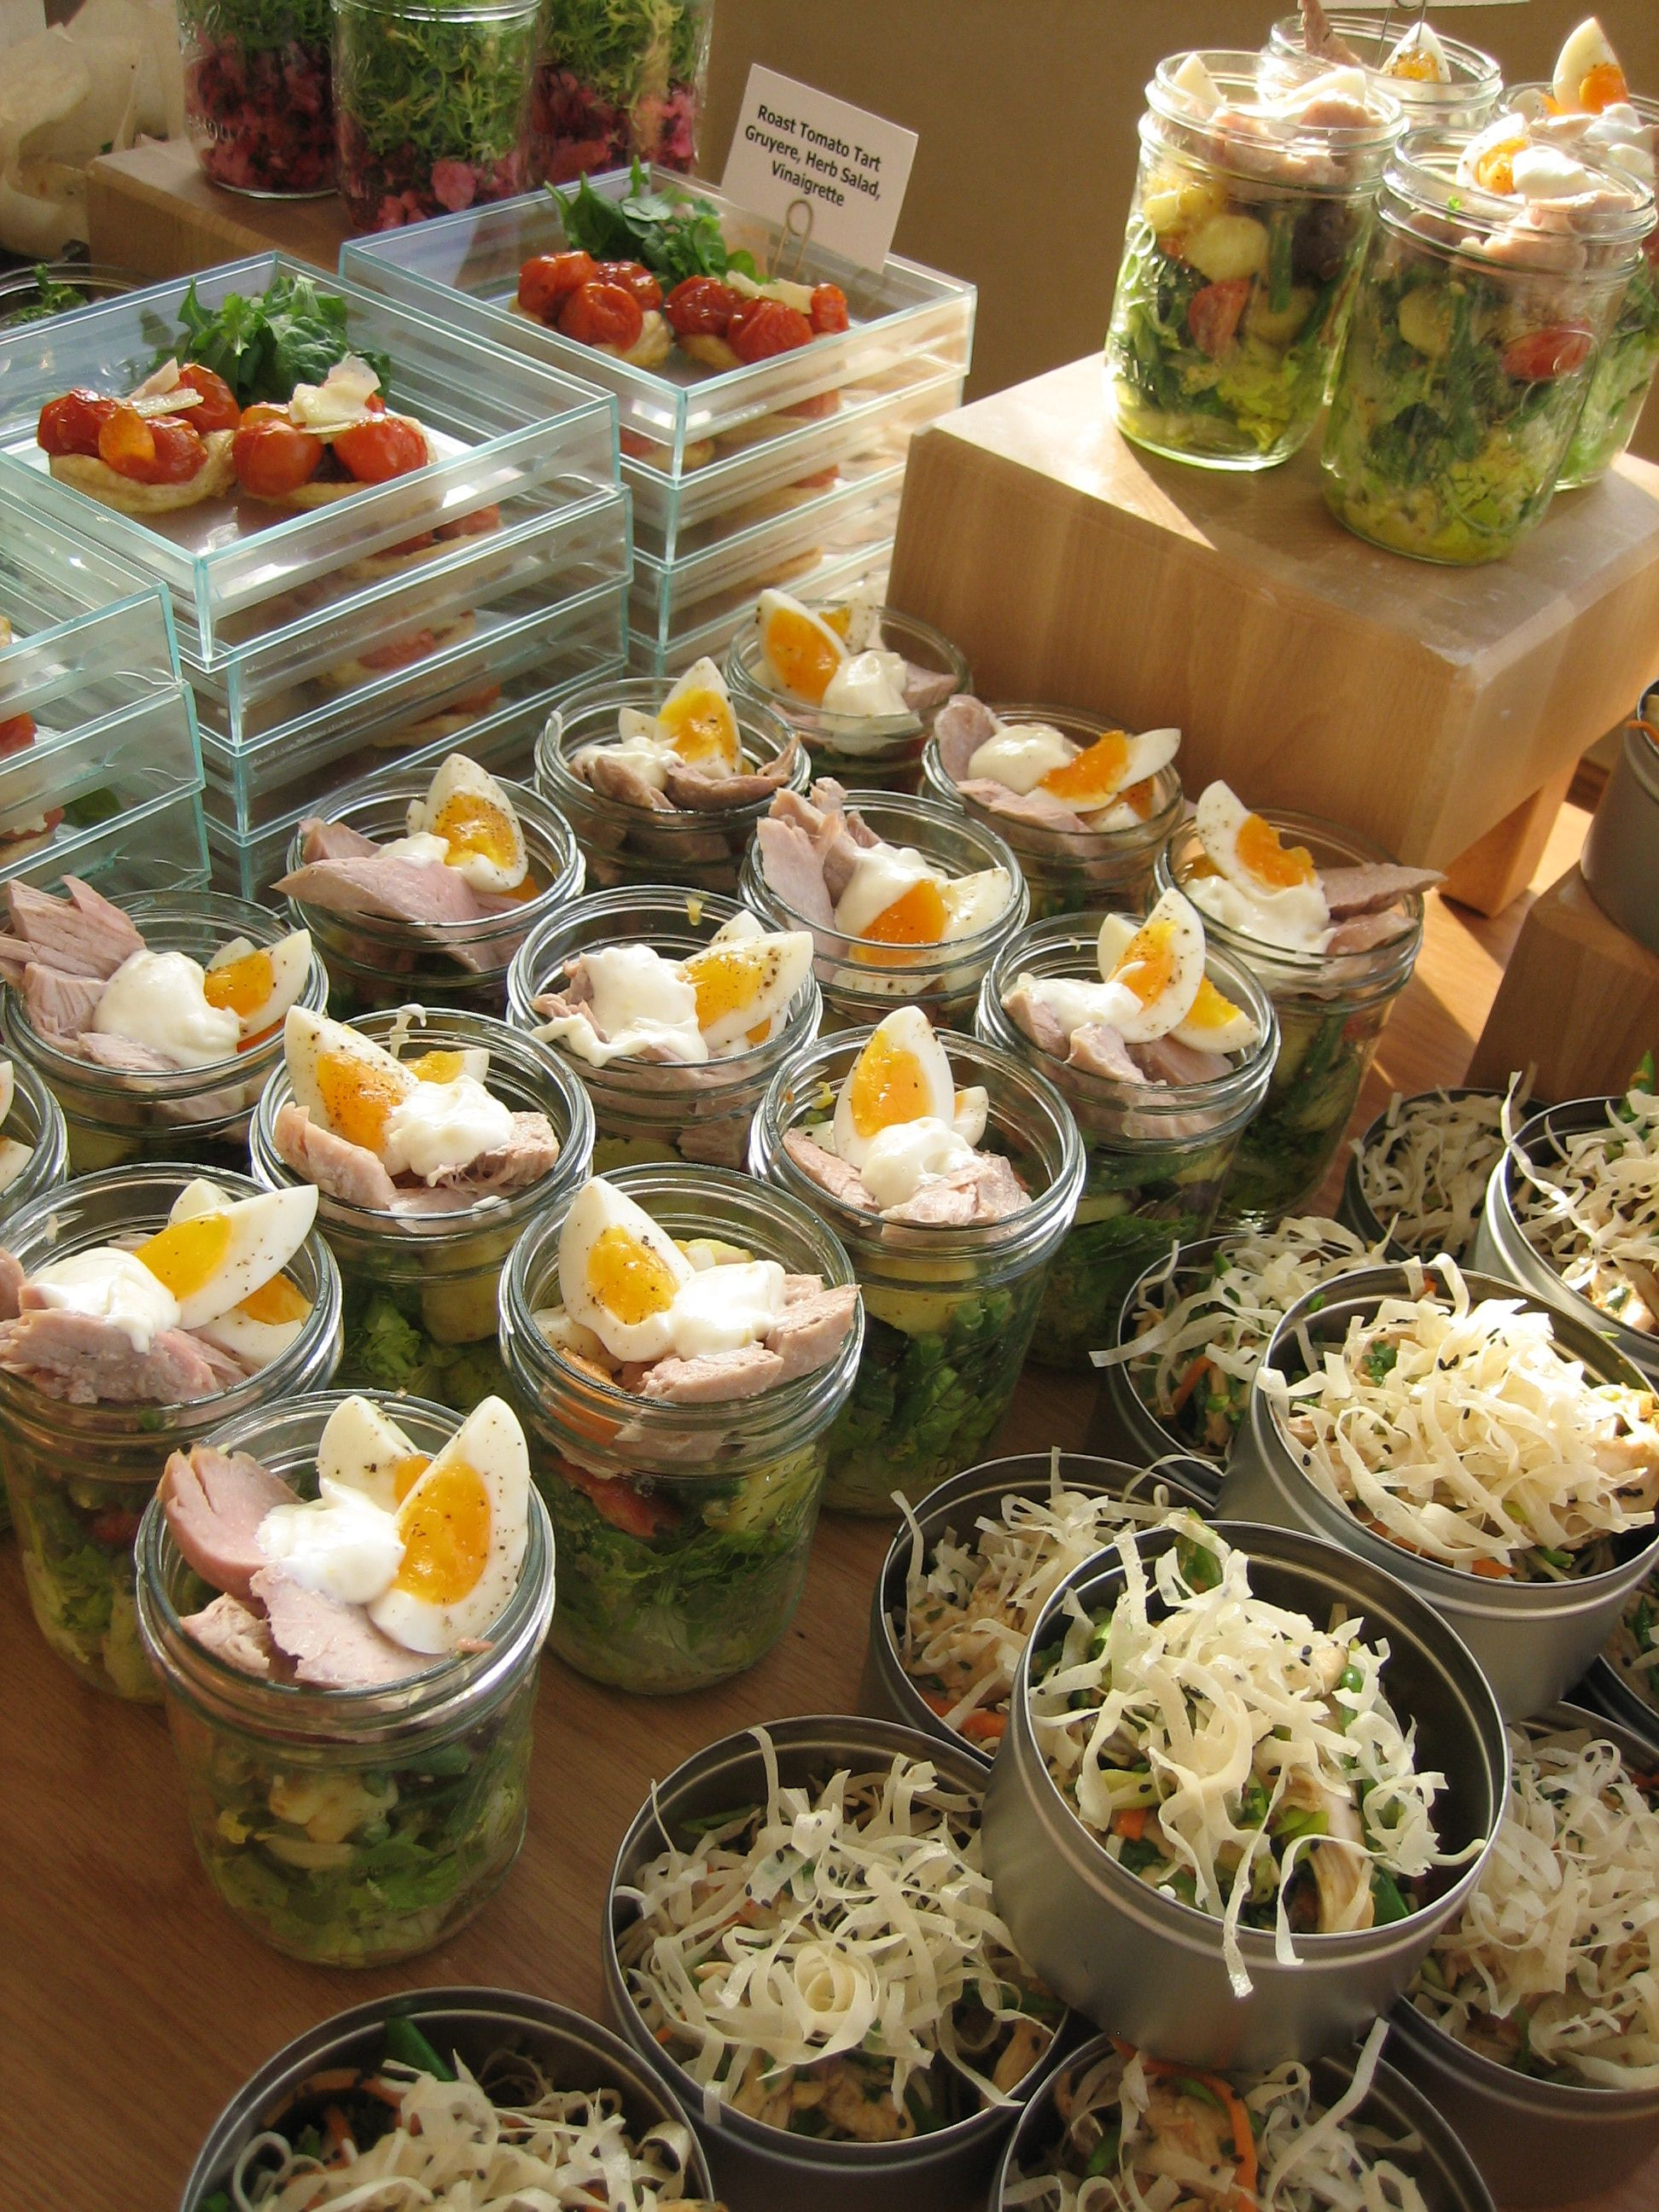 Take Away Salads Fast Healthy Meals Cafe Food Healthy Recipes